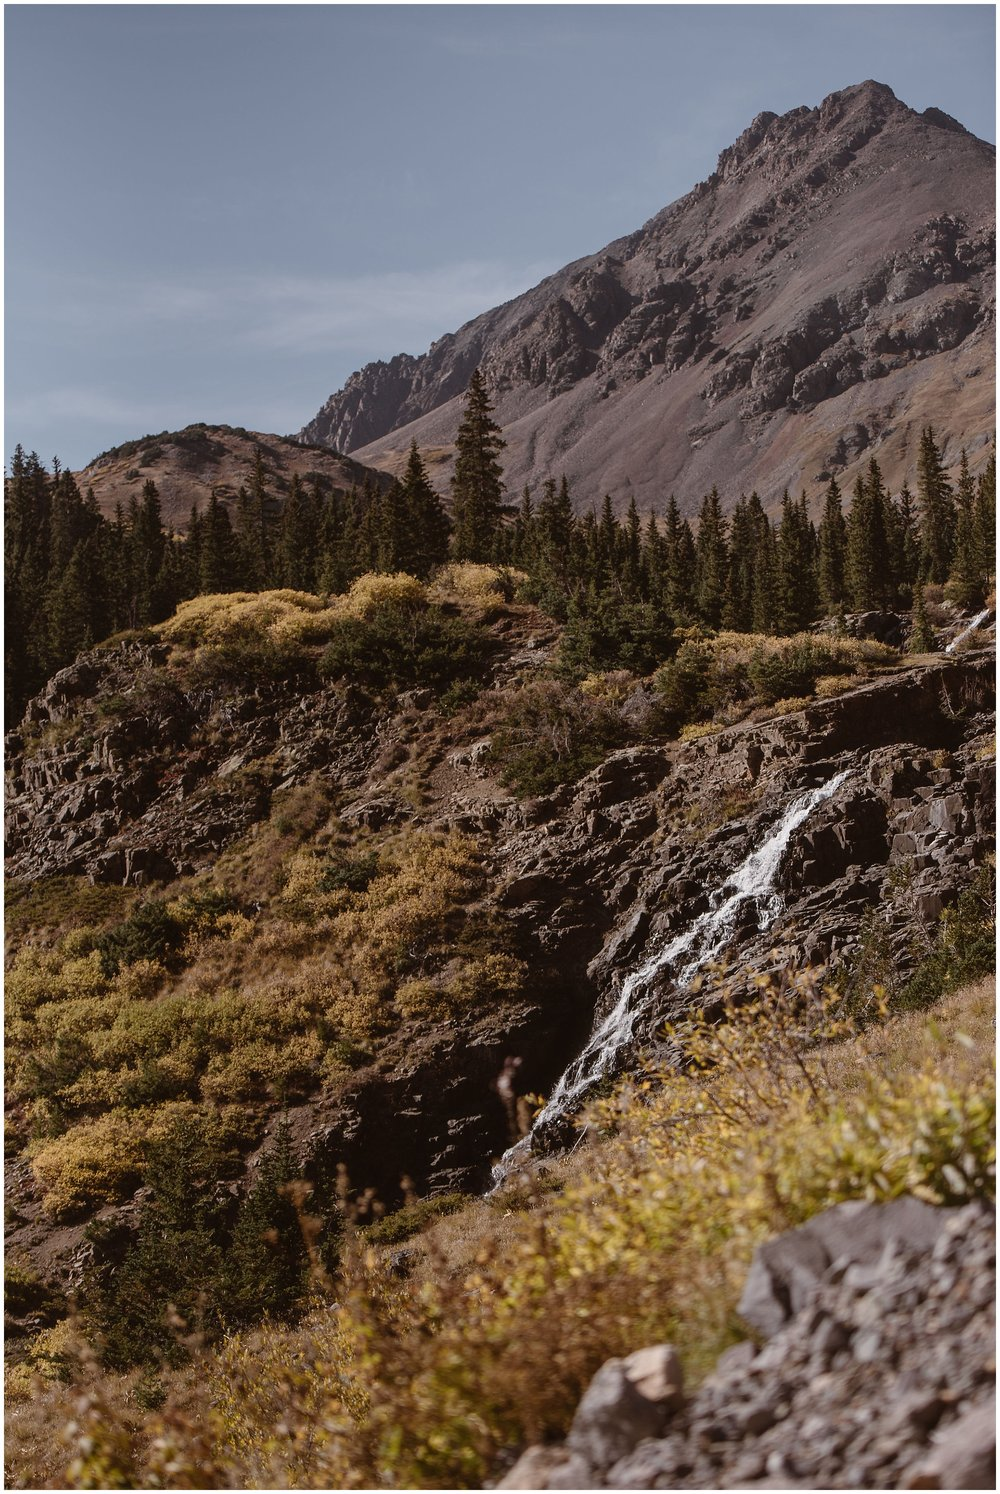 A small, but powerful, waterfall, trickles down the rocks on the Ouray, Colorado mountainside. In the background, green and yellow trees, golden foliage, and craggy mountains can be seen. This is one of the most beautiful places to elope in Colorado.